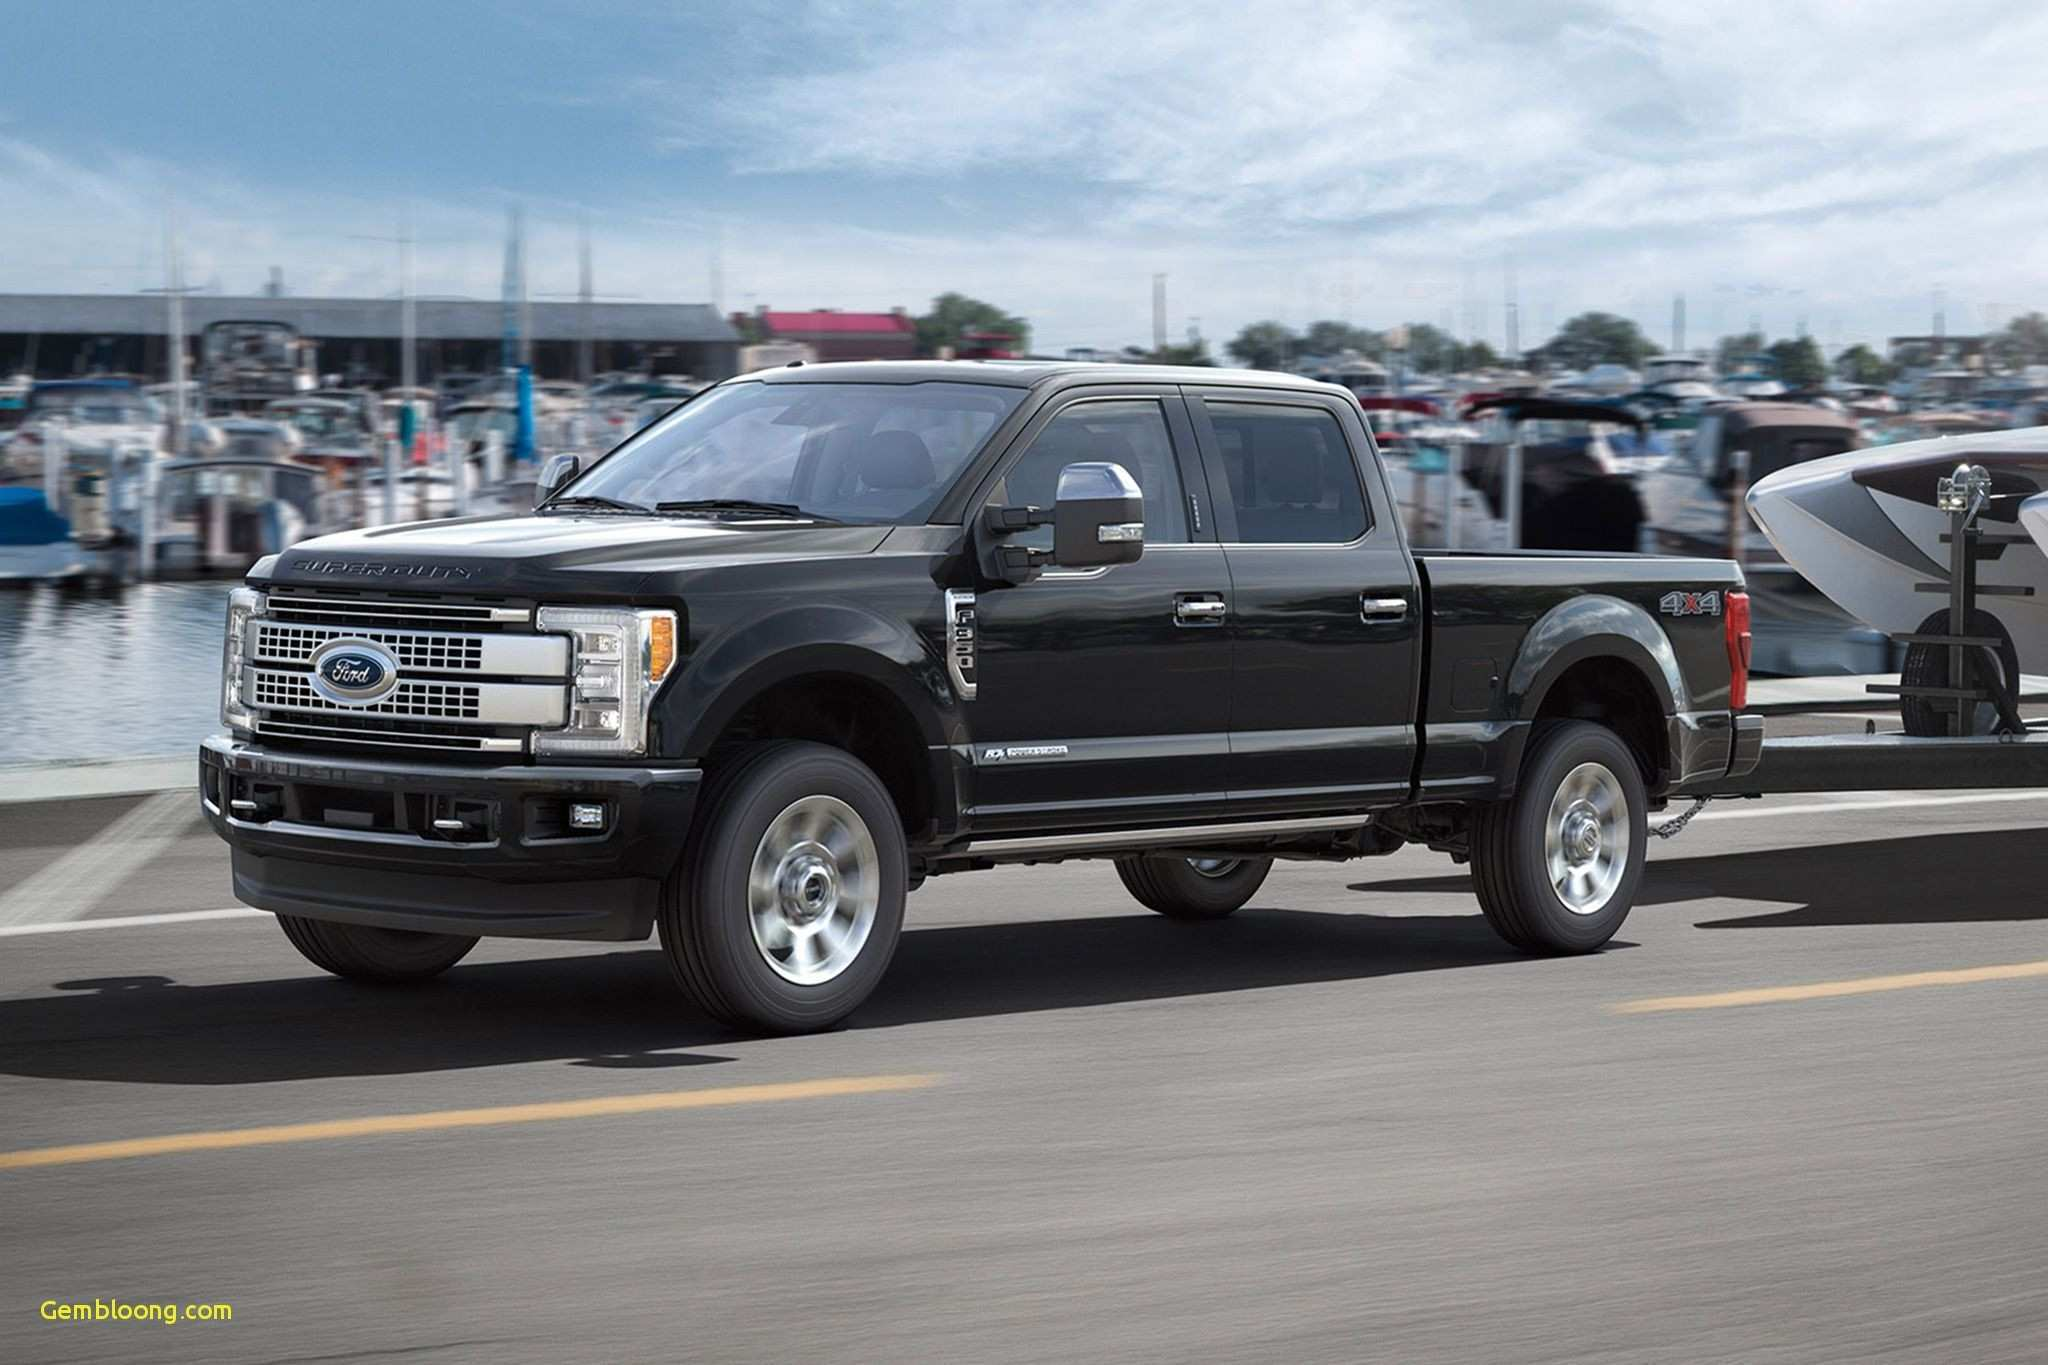 76 A 2019 Ford F250 Diesel Rumored Announced History